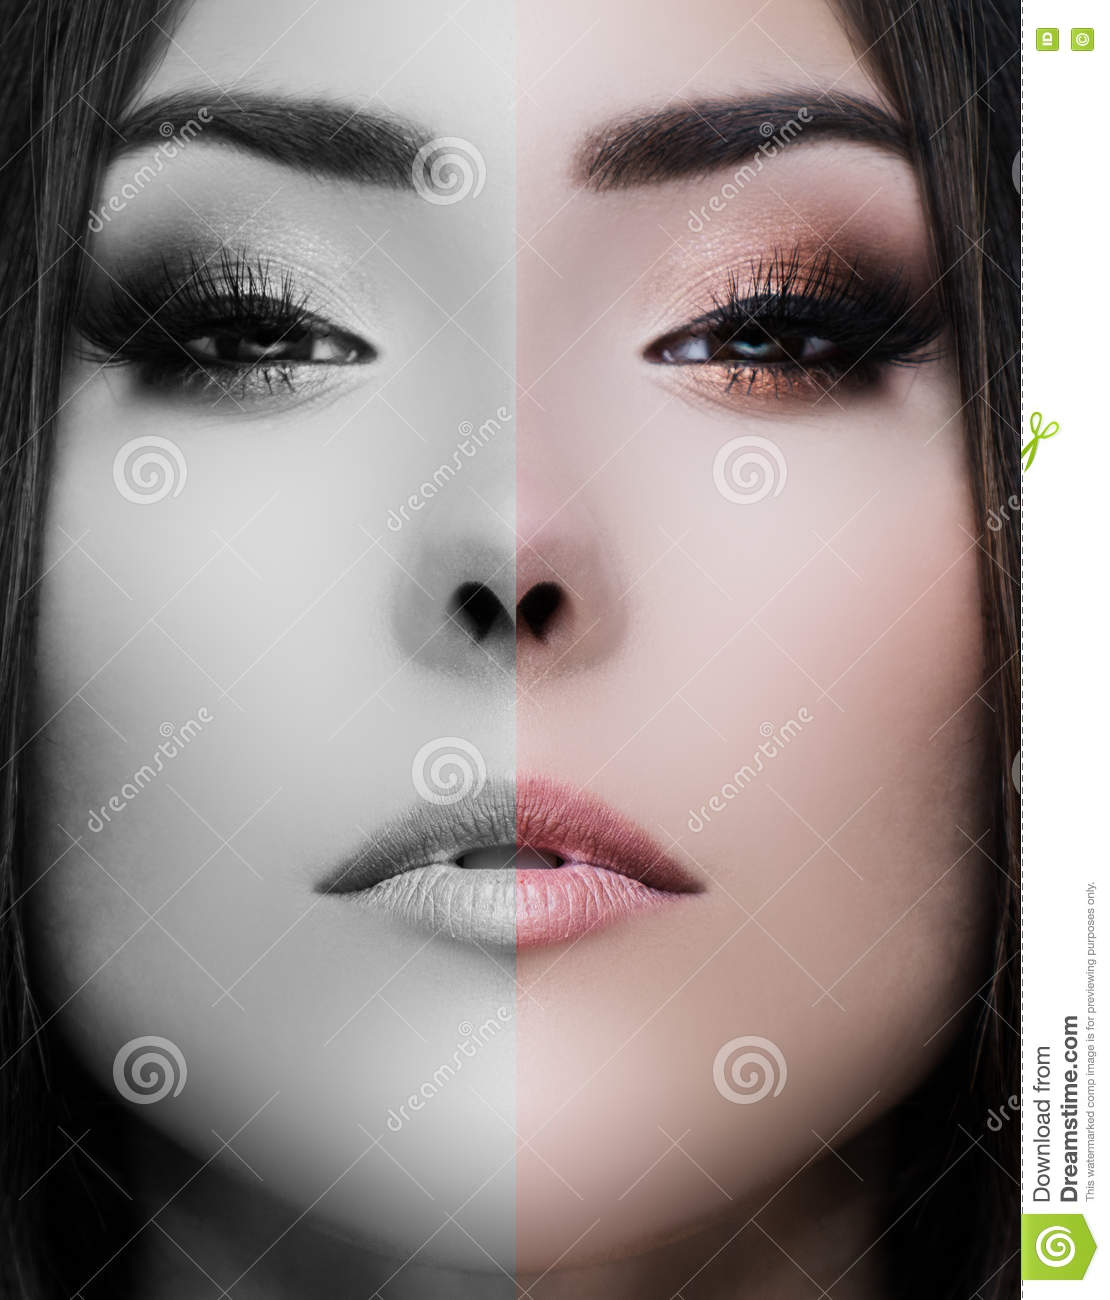 Beauty Close Up Portrait Of Young Woman Face Divided Half